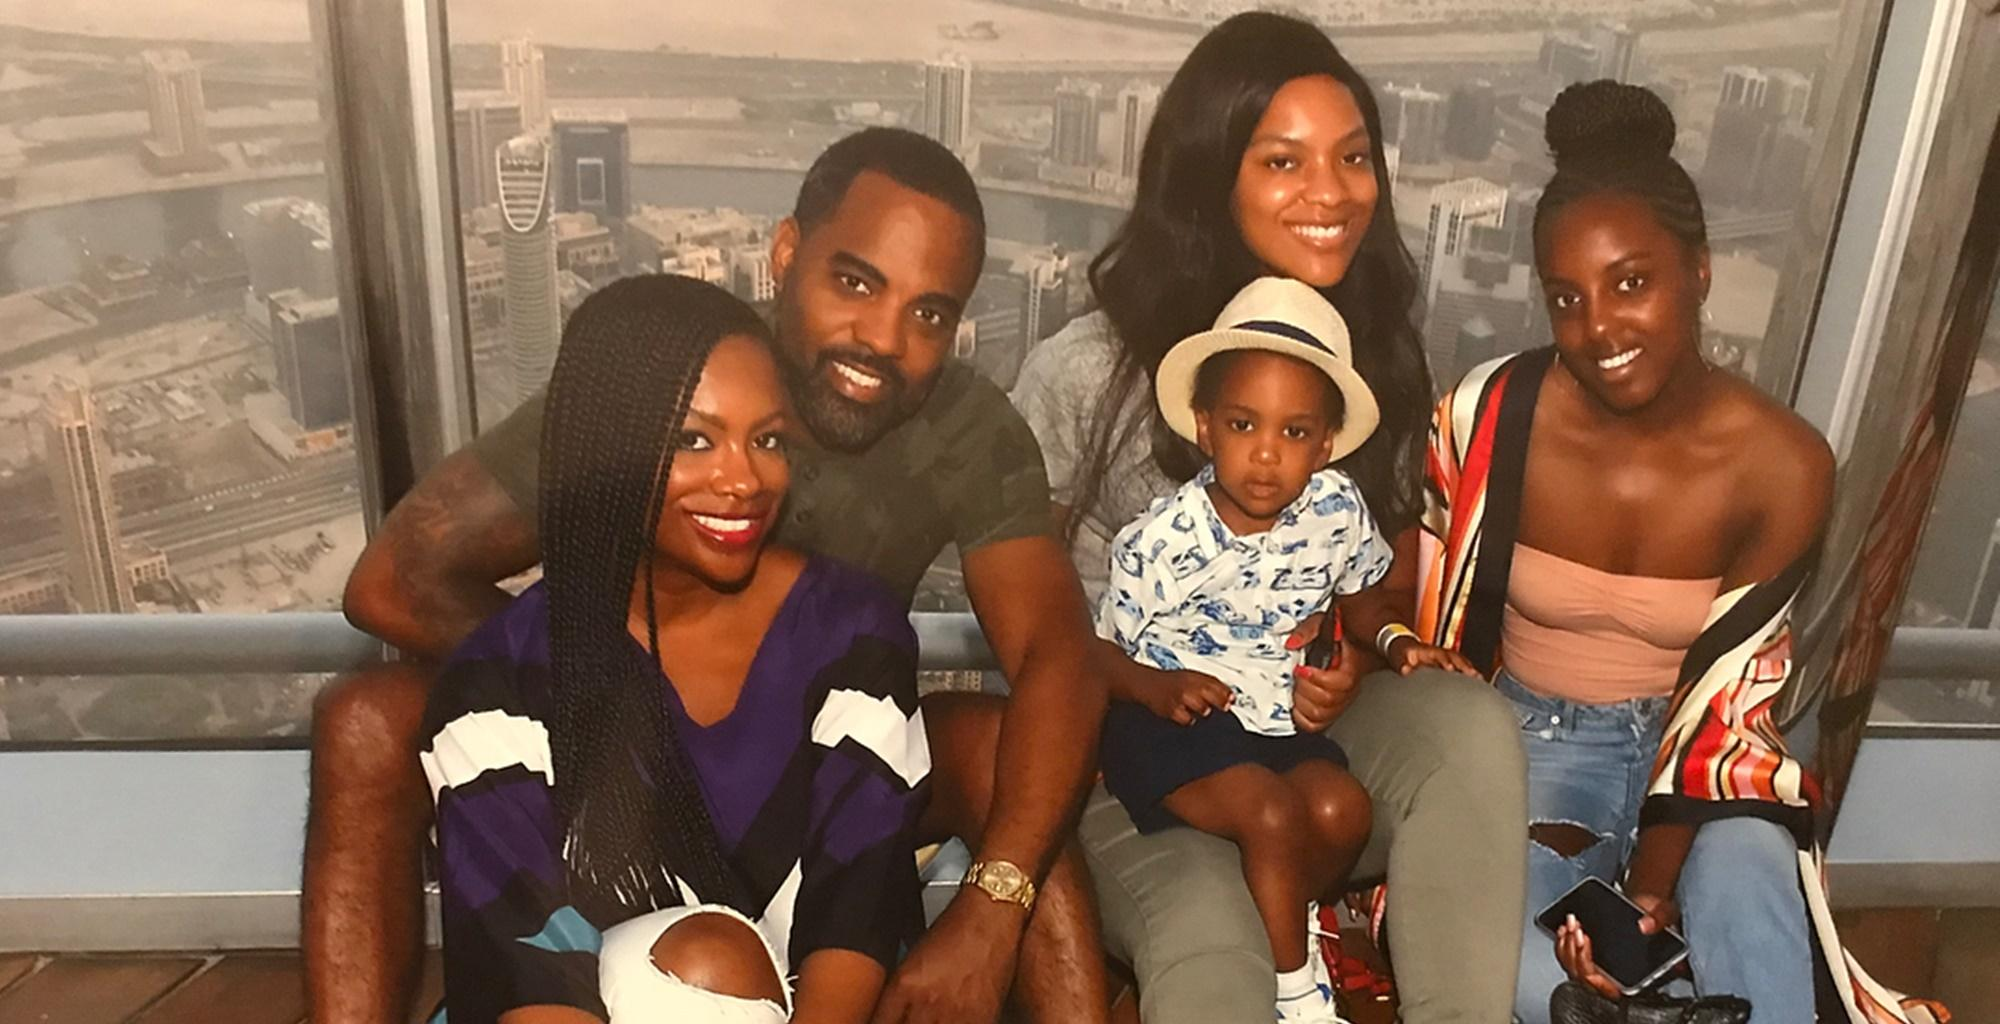 Kandi Burruss And Her Whole Gang Dress Alike For A Family Trip - Check Out Todd Tucker, Ace, And The Two Gorgeous Girls, Riley And Kaela